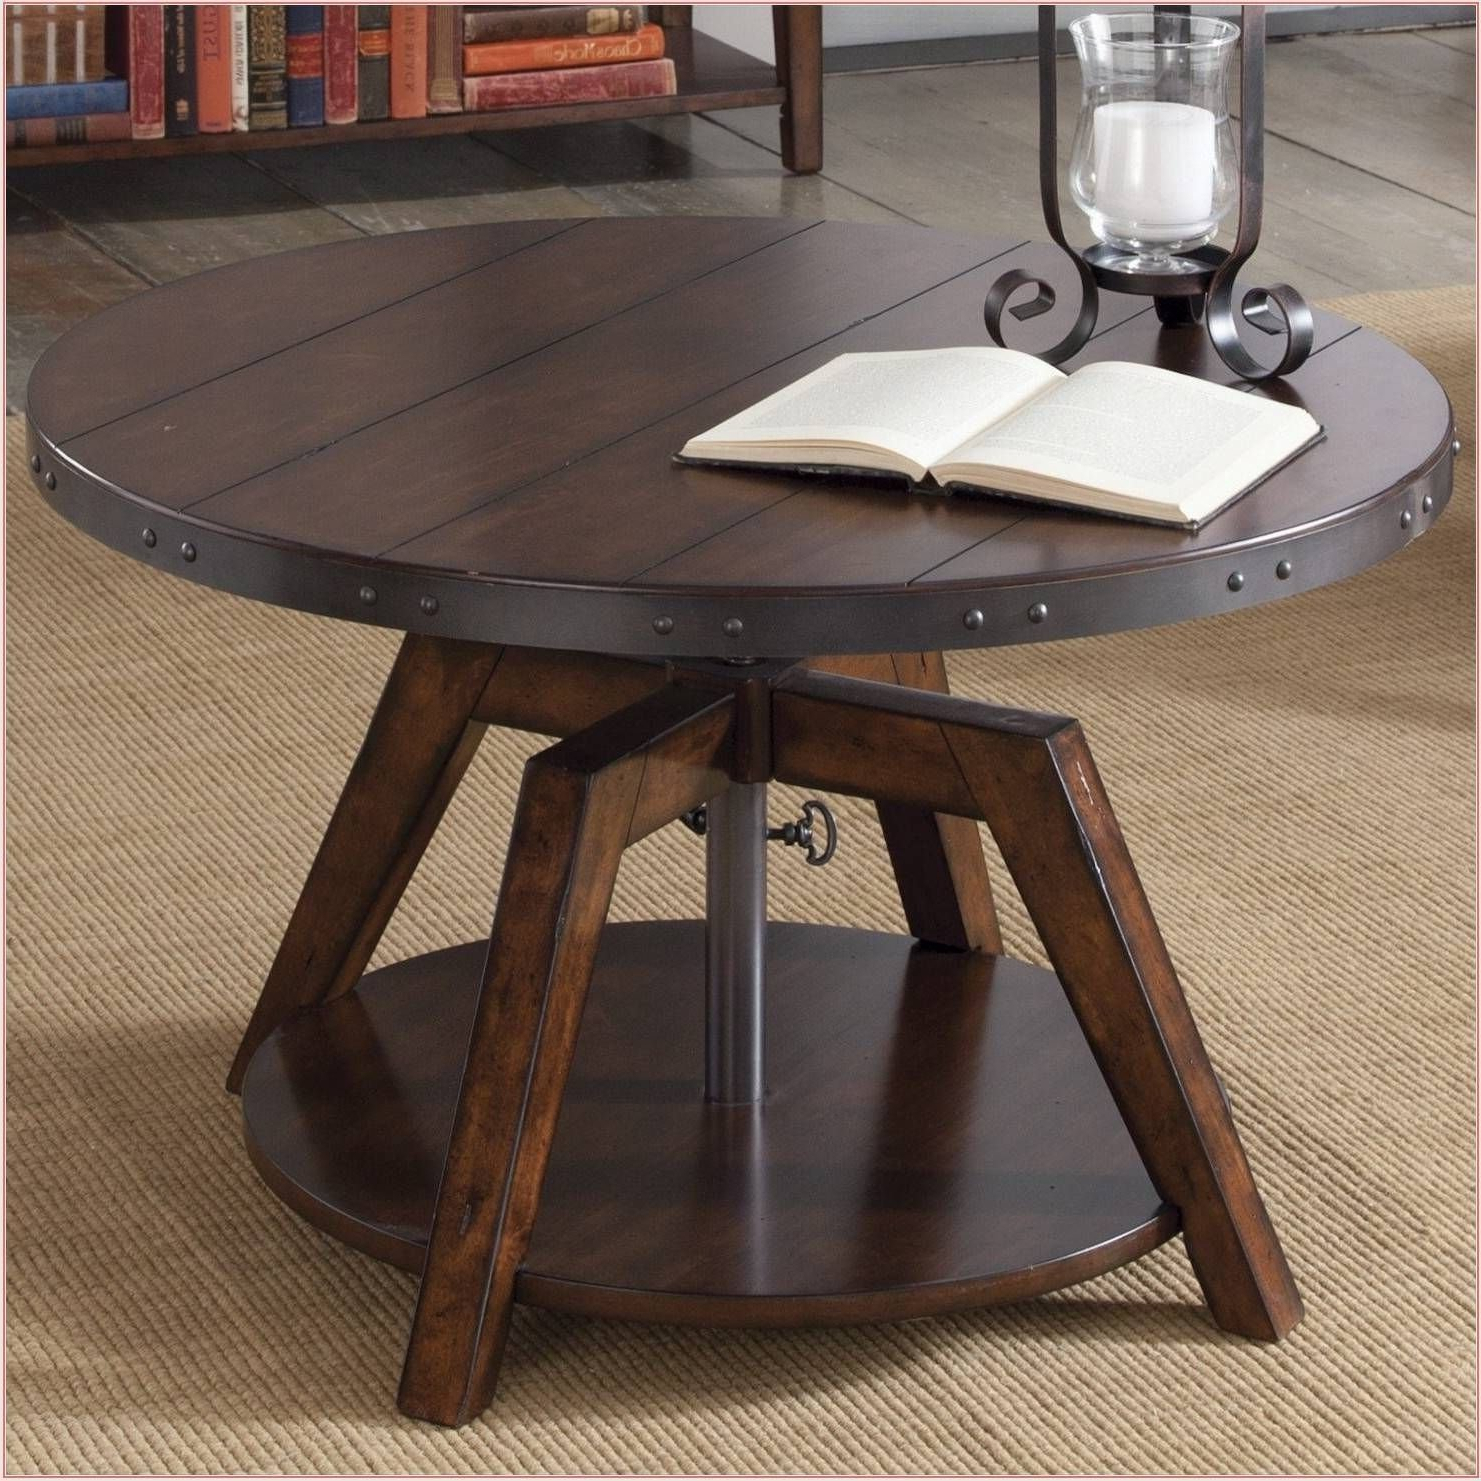 Most Popular Wood Kitchen Dining Tables With Removable Center Leaf Intended For 50+ Amazing Convertible Coffee Table To Dining Table (View 14 of 30)